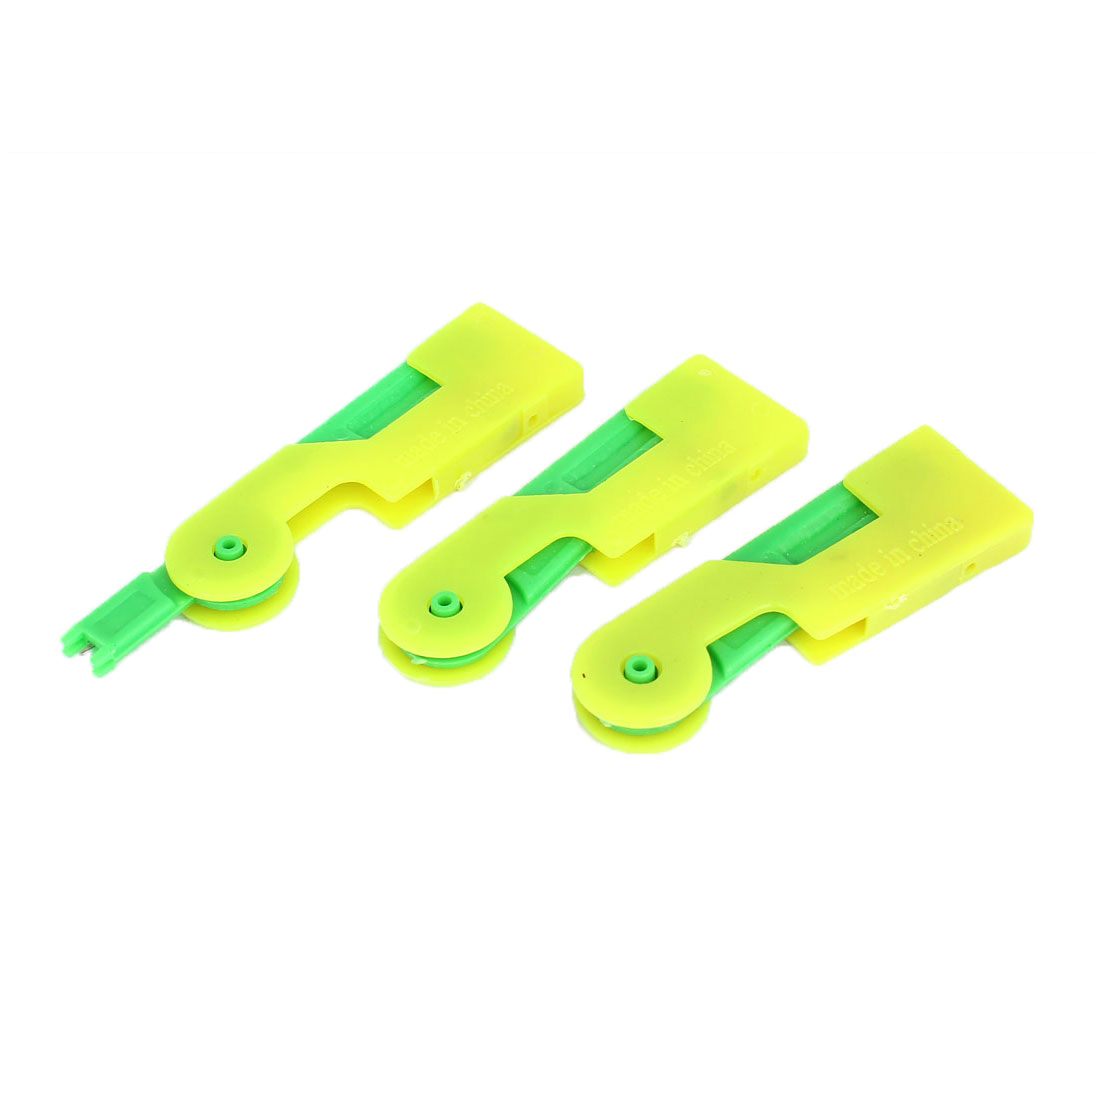 3pcs Press Sewing Automatic Needle Threader Inserter Yellow Green